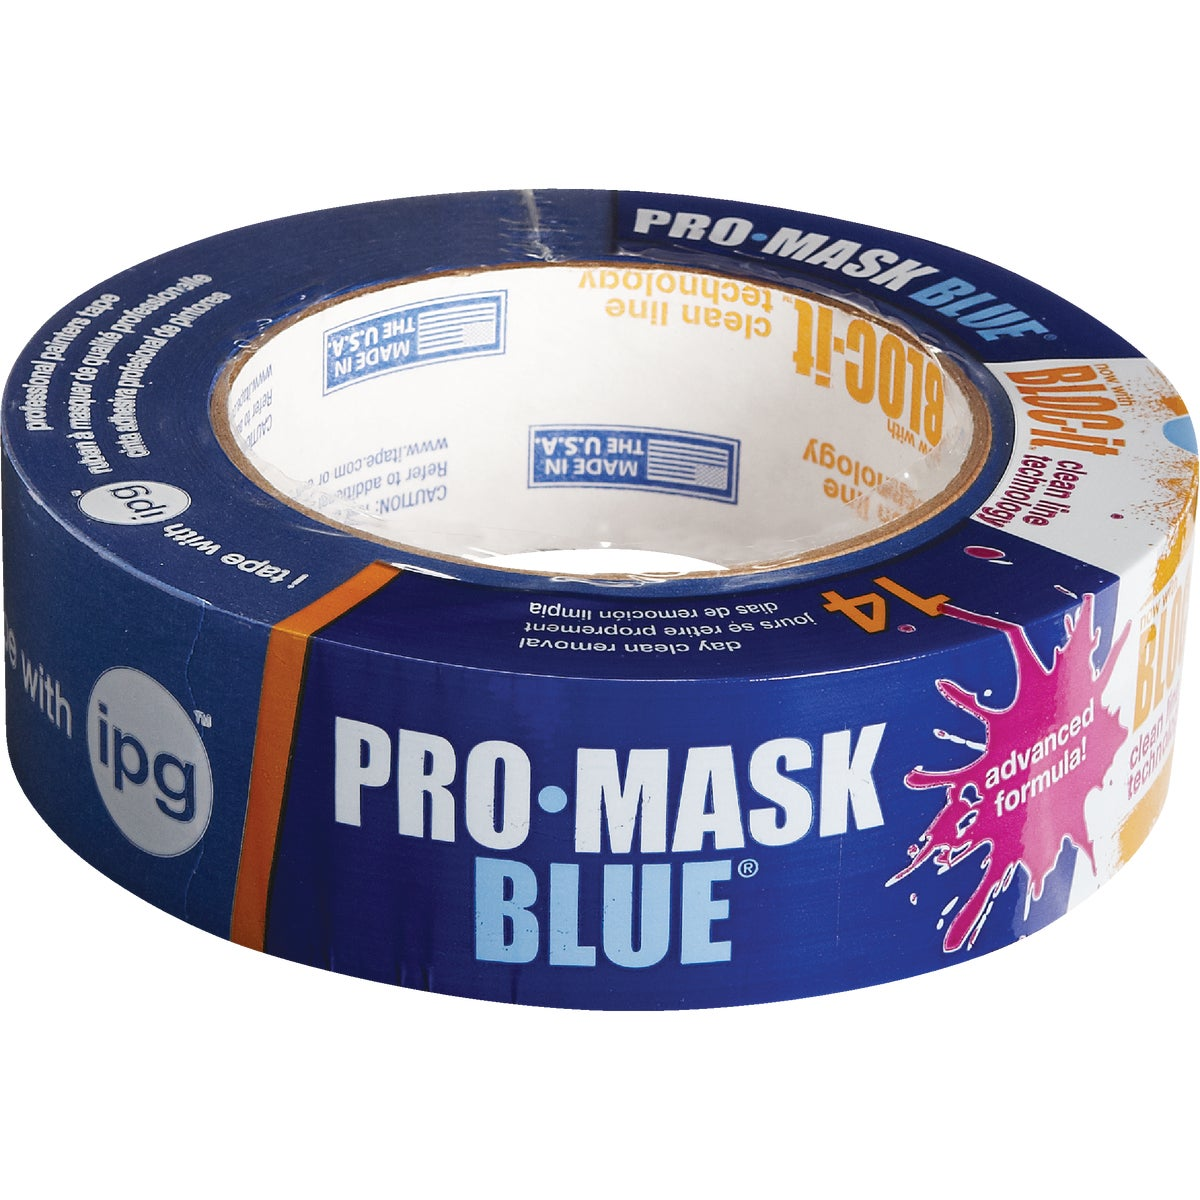 "1.5"" PRO BL MASKING TAPE - 9532 by Intertape Polymer"